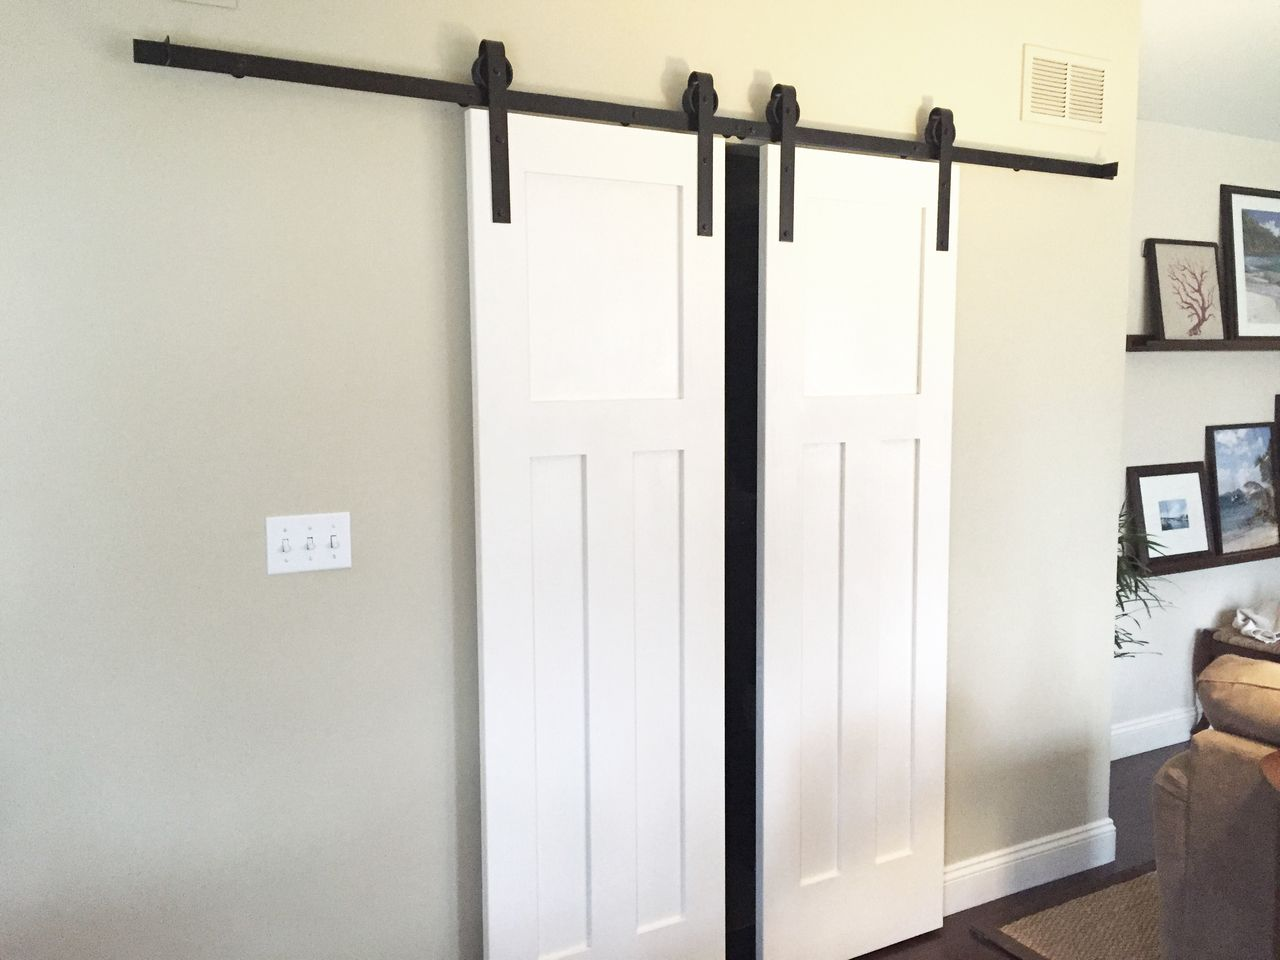 Double Sliding Barn Door Hardware Kit For Two Doors With 12 Feet Track 144 Made In Usa The Barn Do Interior Barn Doors Barn Door Double Sliding Barn Doors